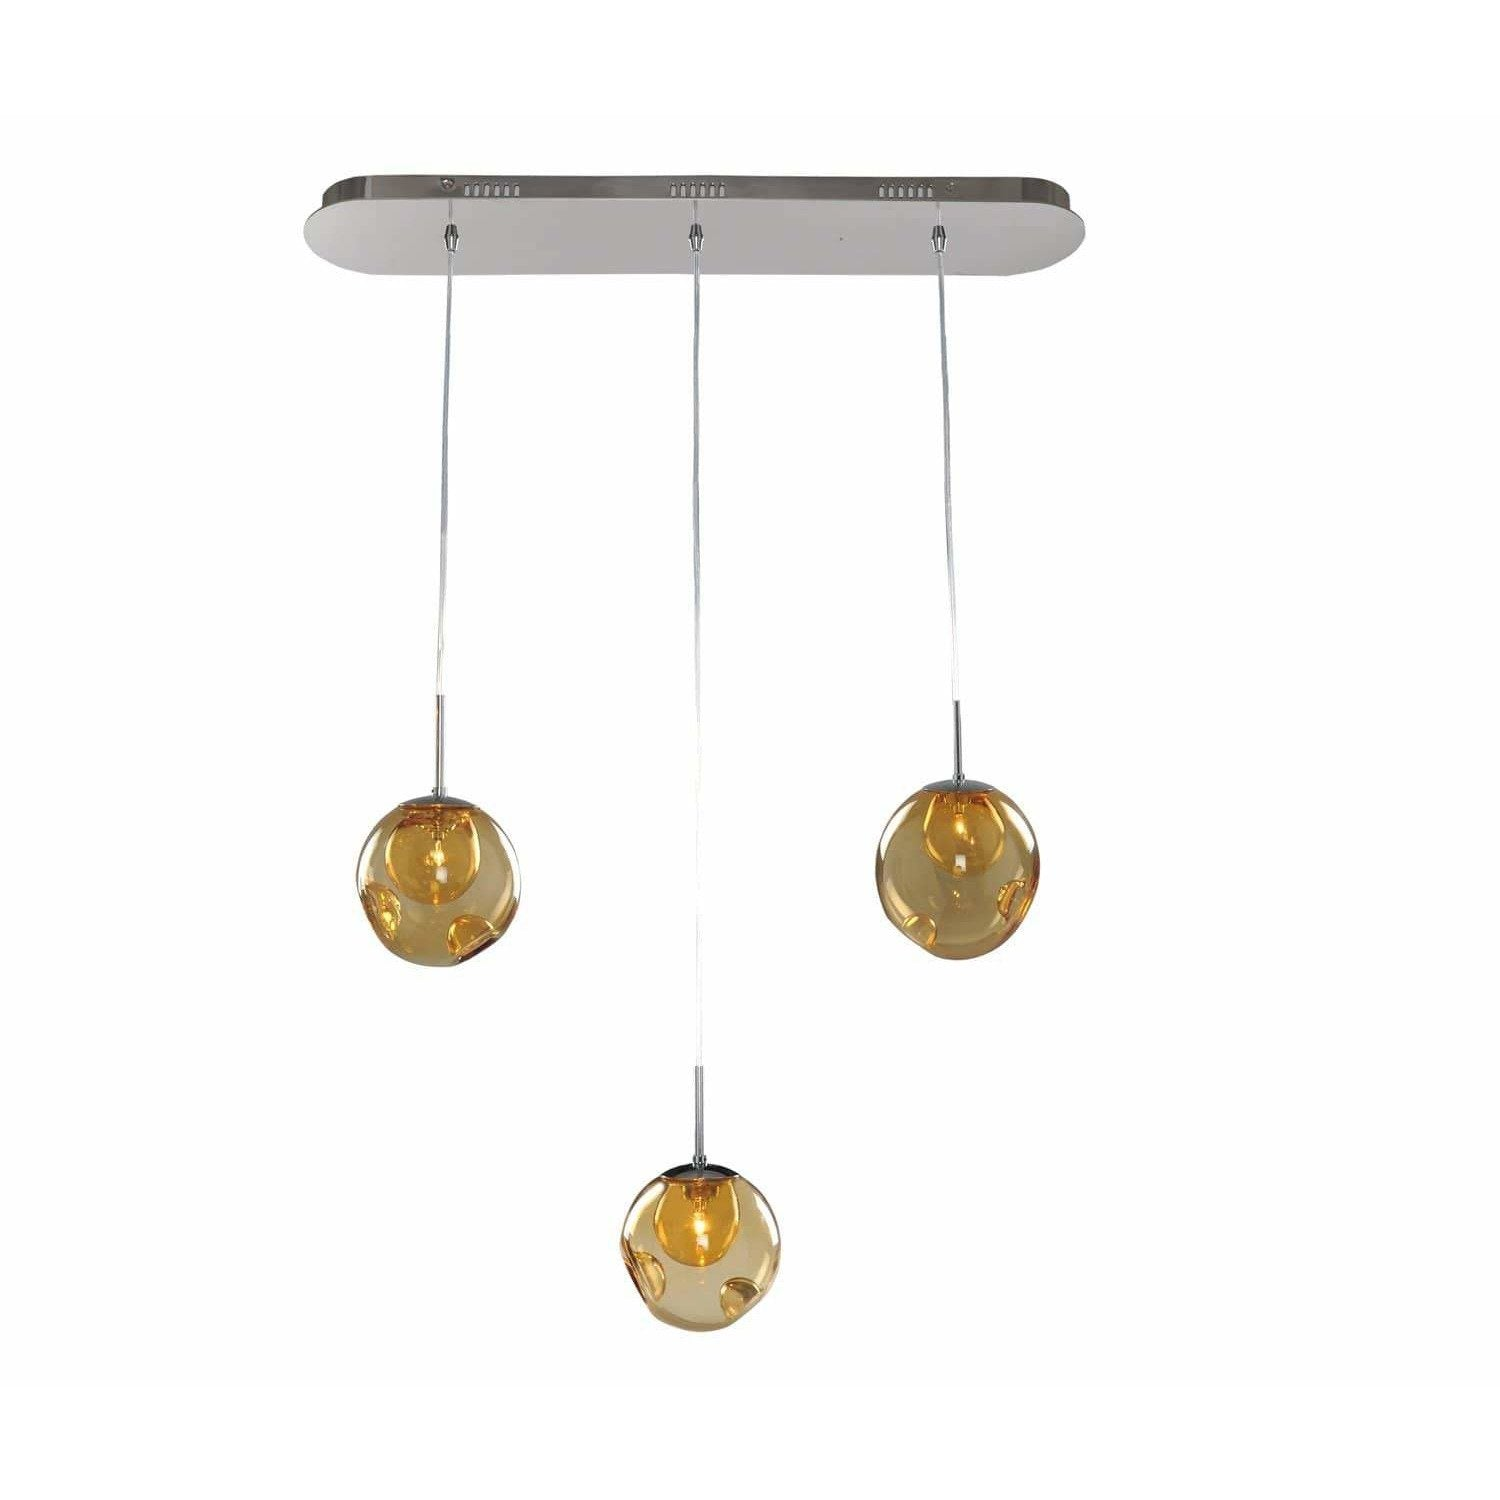 Kalco Lighting Island Lighting Chrome / Faux Calcite Standard Amber Glass Meteor 3 Light Island By Kalco Lighting 309542